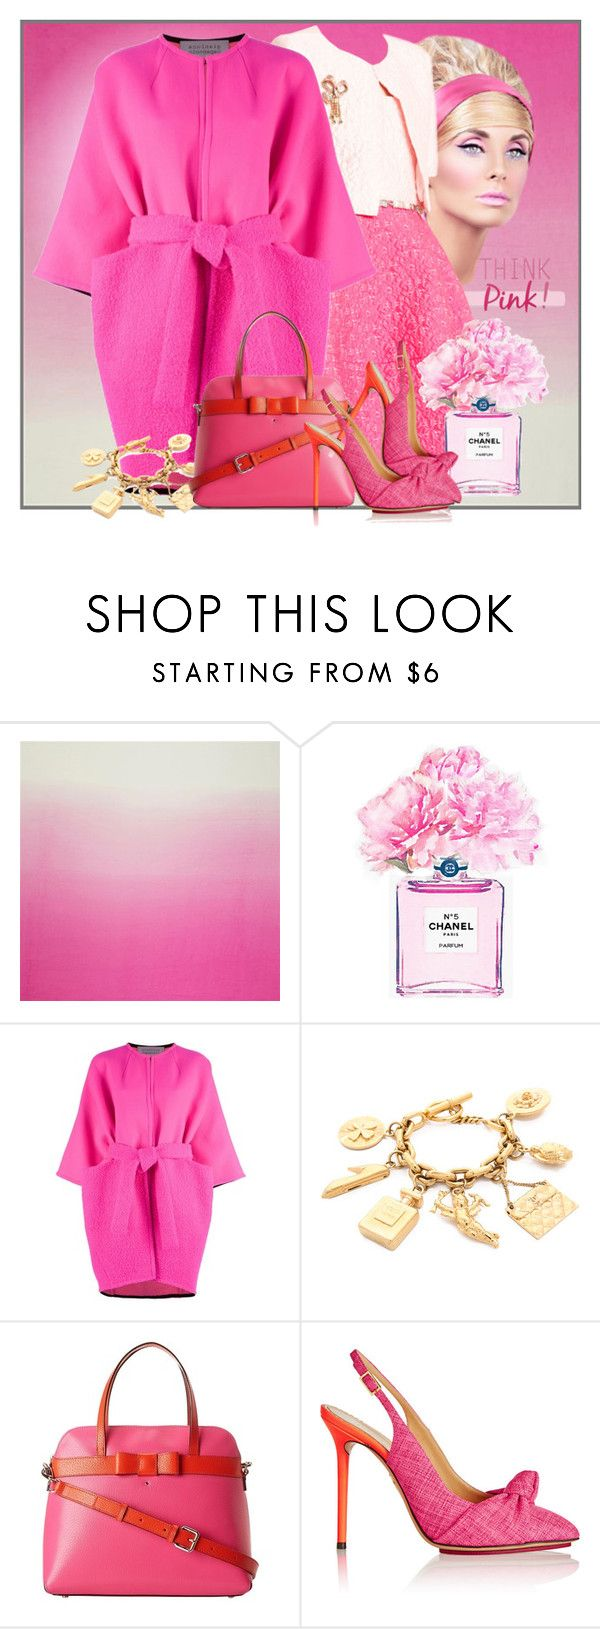 """""""pink coat contest"""" by benzin ❤ liked on Polyvore featuring Oscar de la Renta, Chanel, Gianluca Capannolo, Kate Spade, Charlotte Olympia, women's clothing, women, female, woman and misses"""